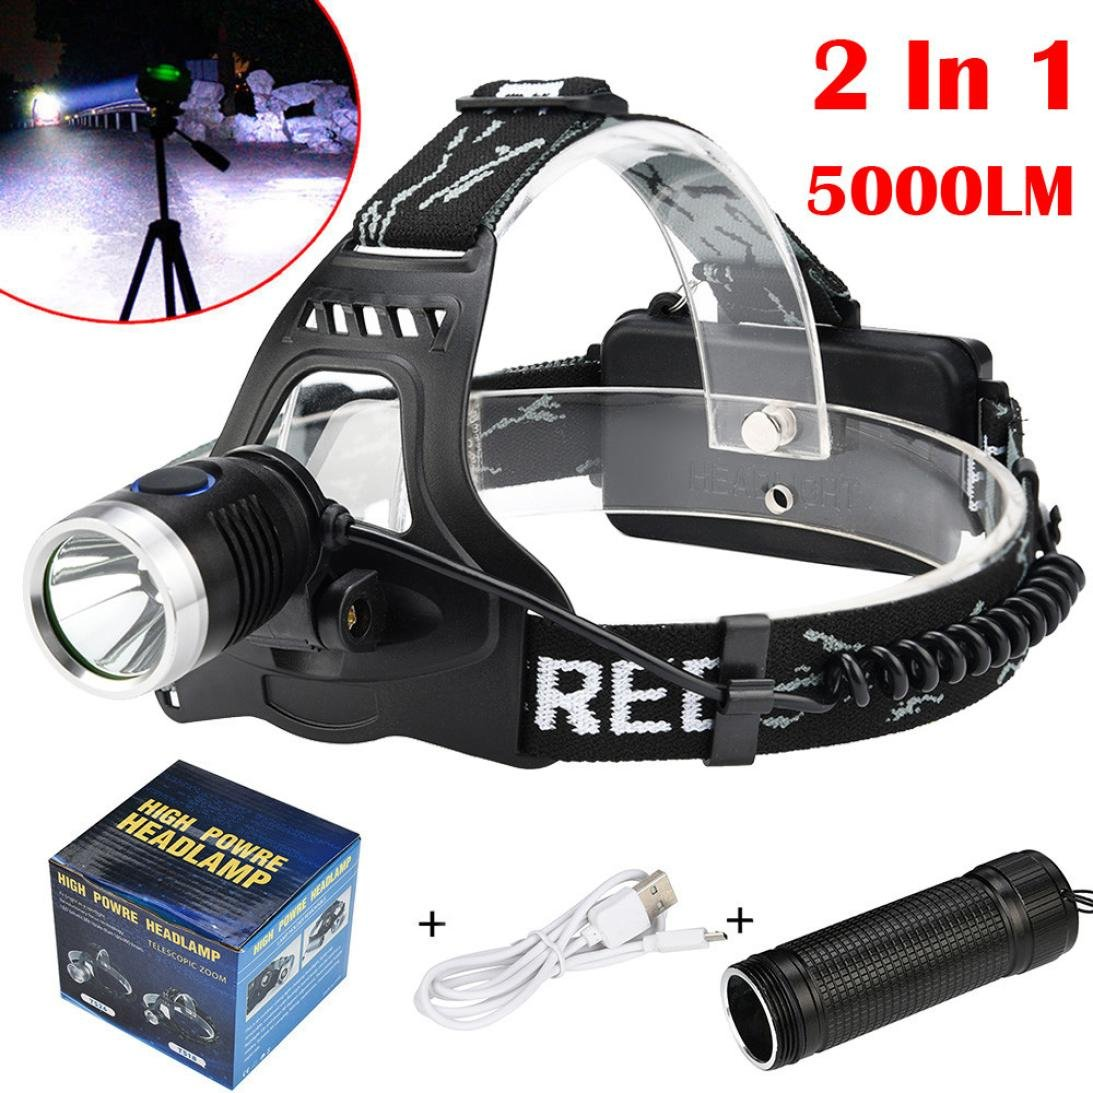 Coerni 2-in 1 Waterproof 5000 lumens LED Headlamp and Flashlight USB Rechargeable (B-No Battery)